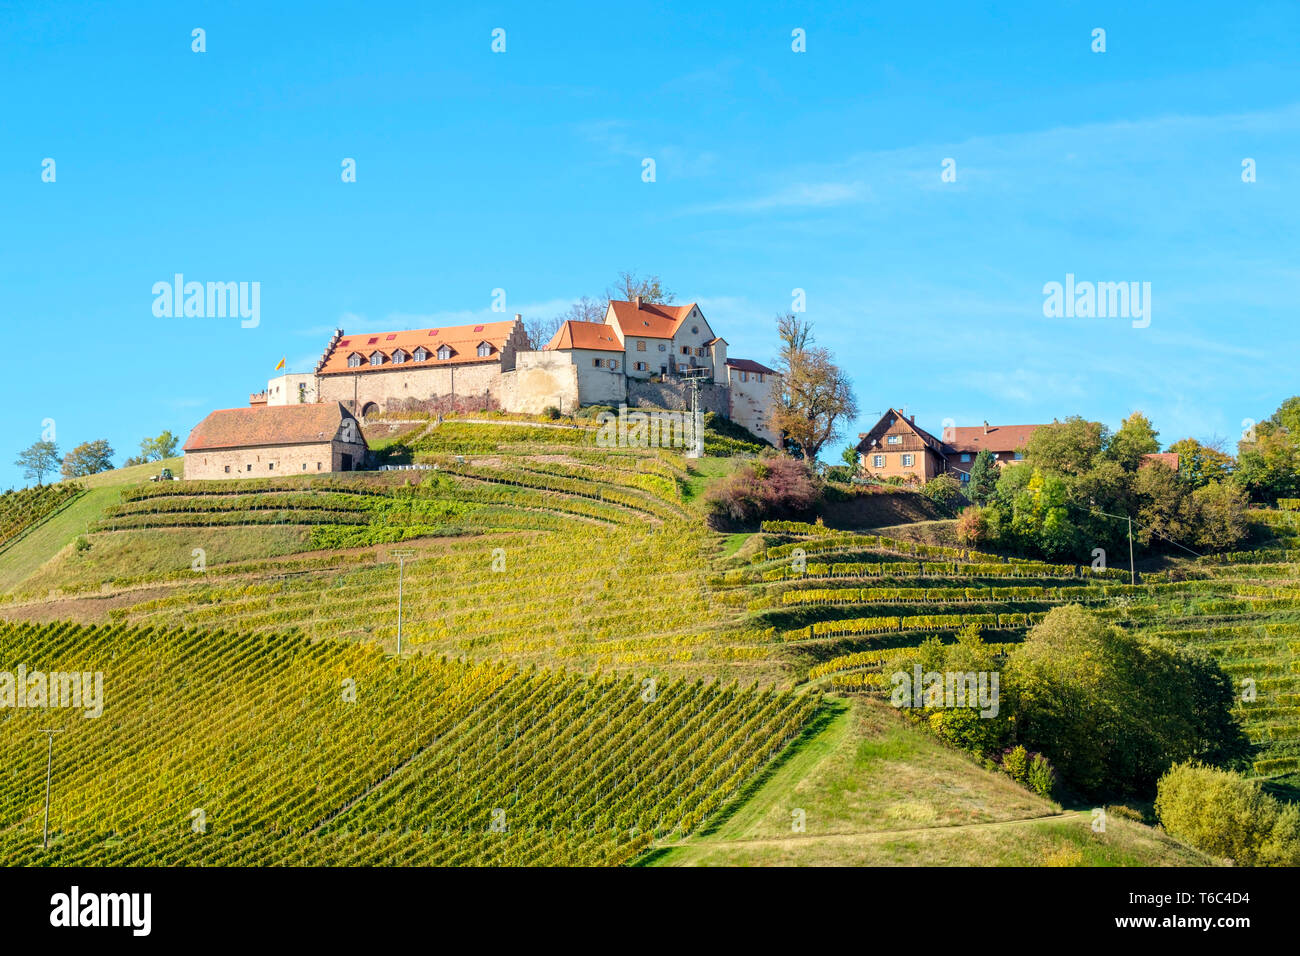 Schloss Staufenberg castle surrounded by vineyards, Durbach, Baden-Württemberg, Germany - Stock Image